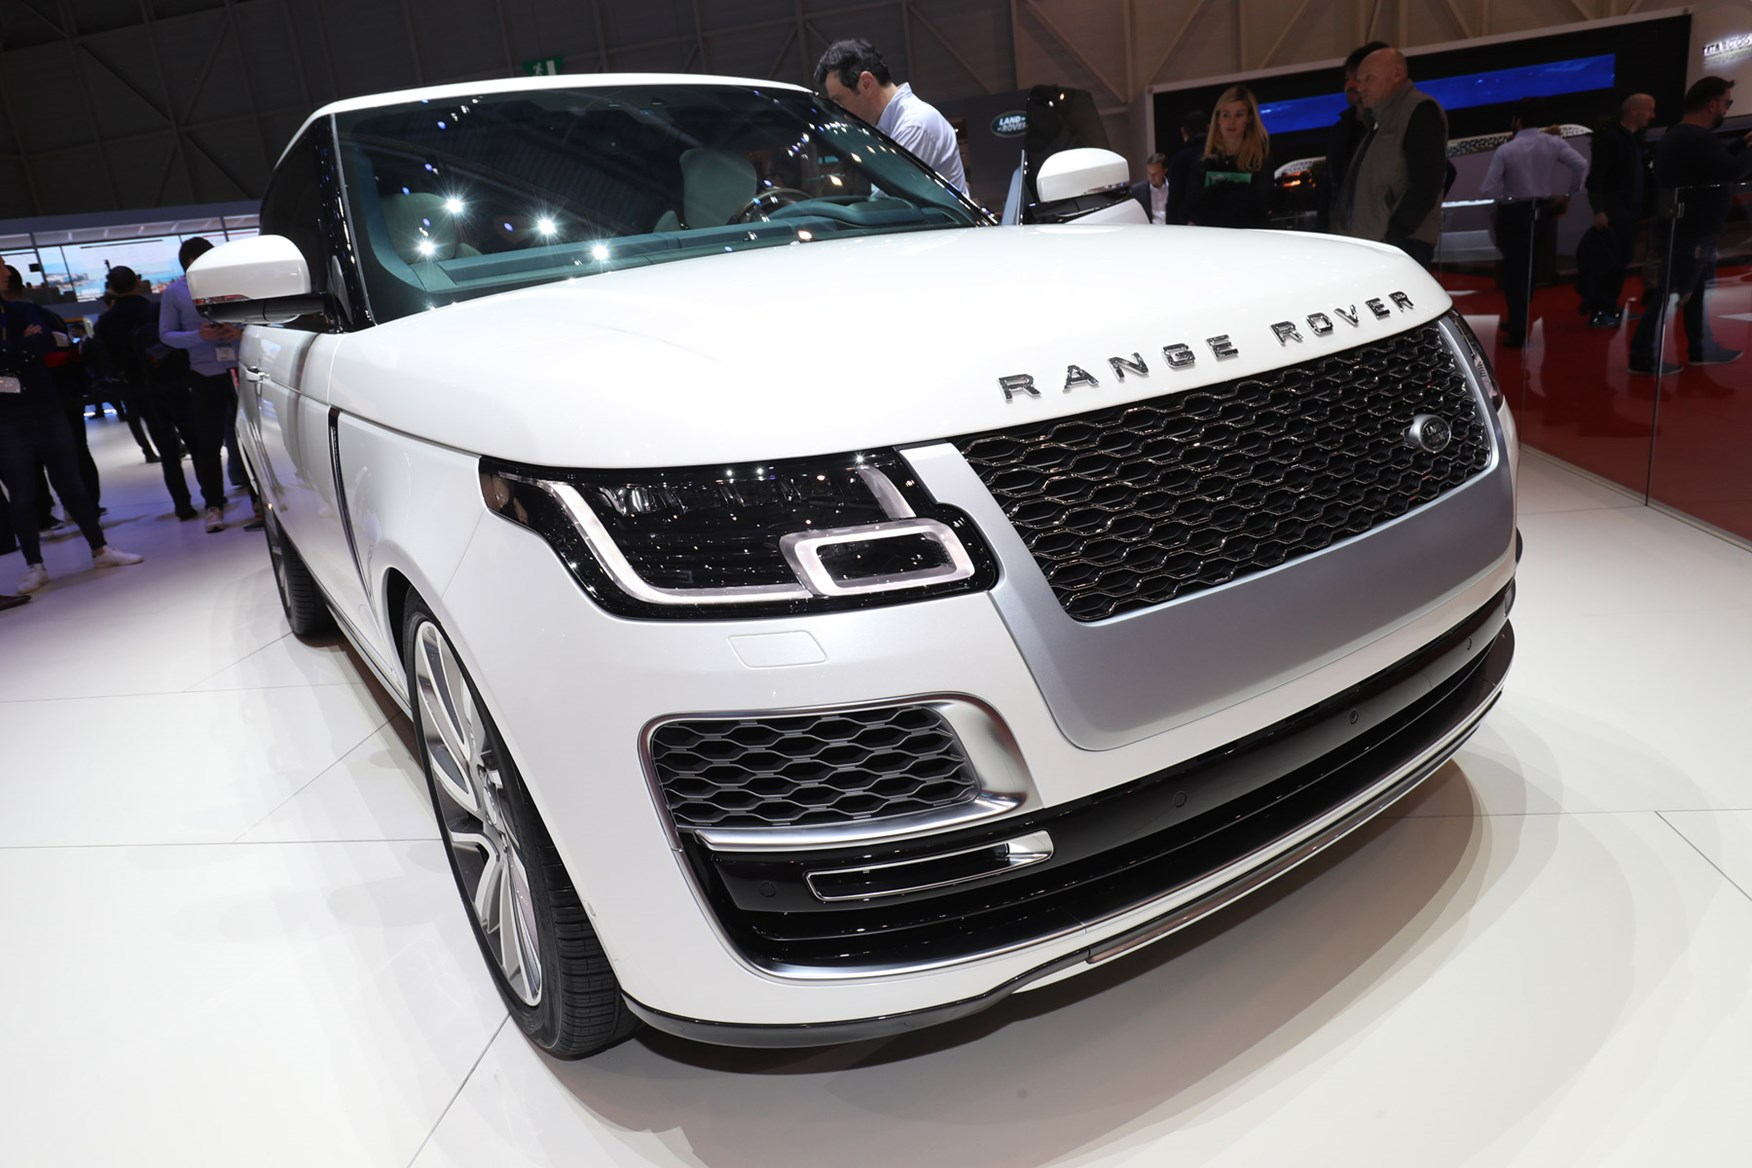 Used Range Rovers >> Land Rover Range Rover SV Coupe Review (2019) | Parkers